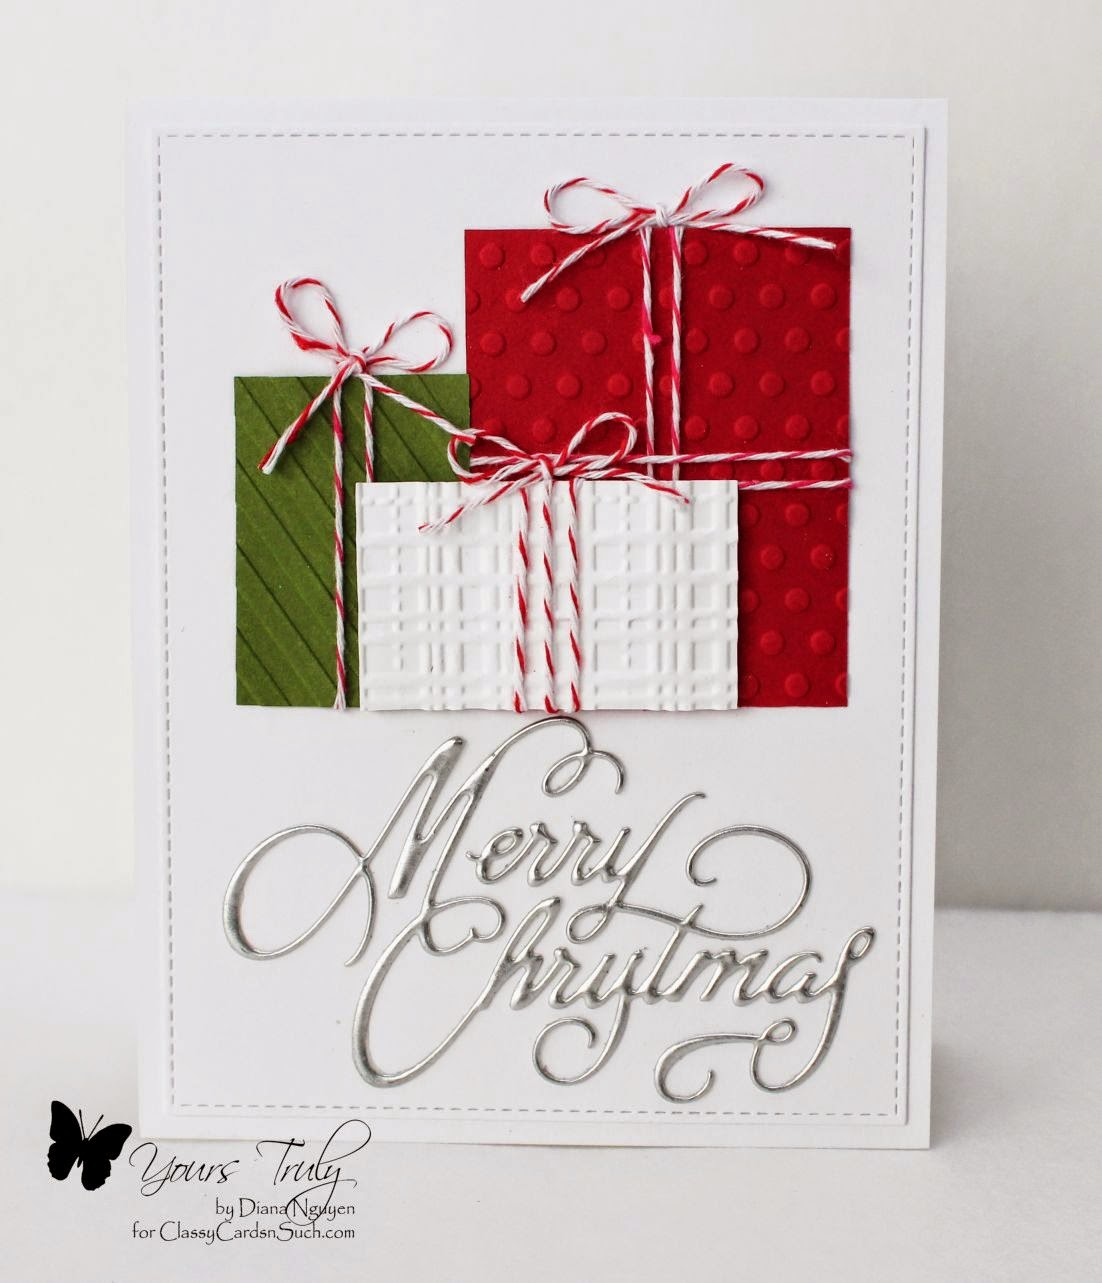 Diana Nguyen, Impression Obsession, Christmas, CAS, embossing folders